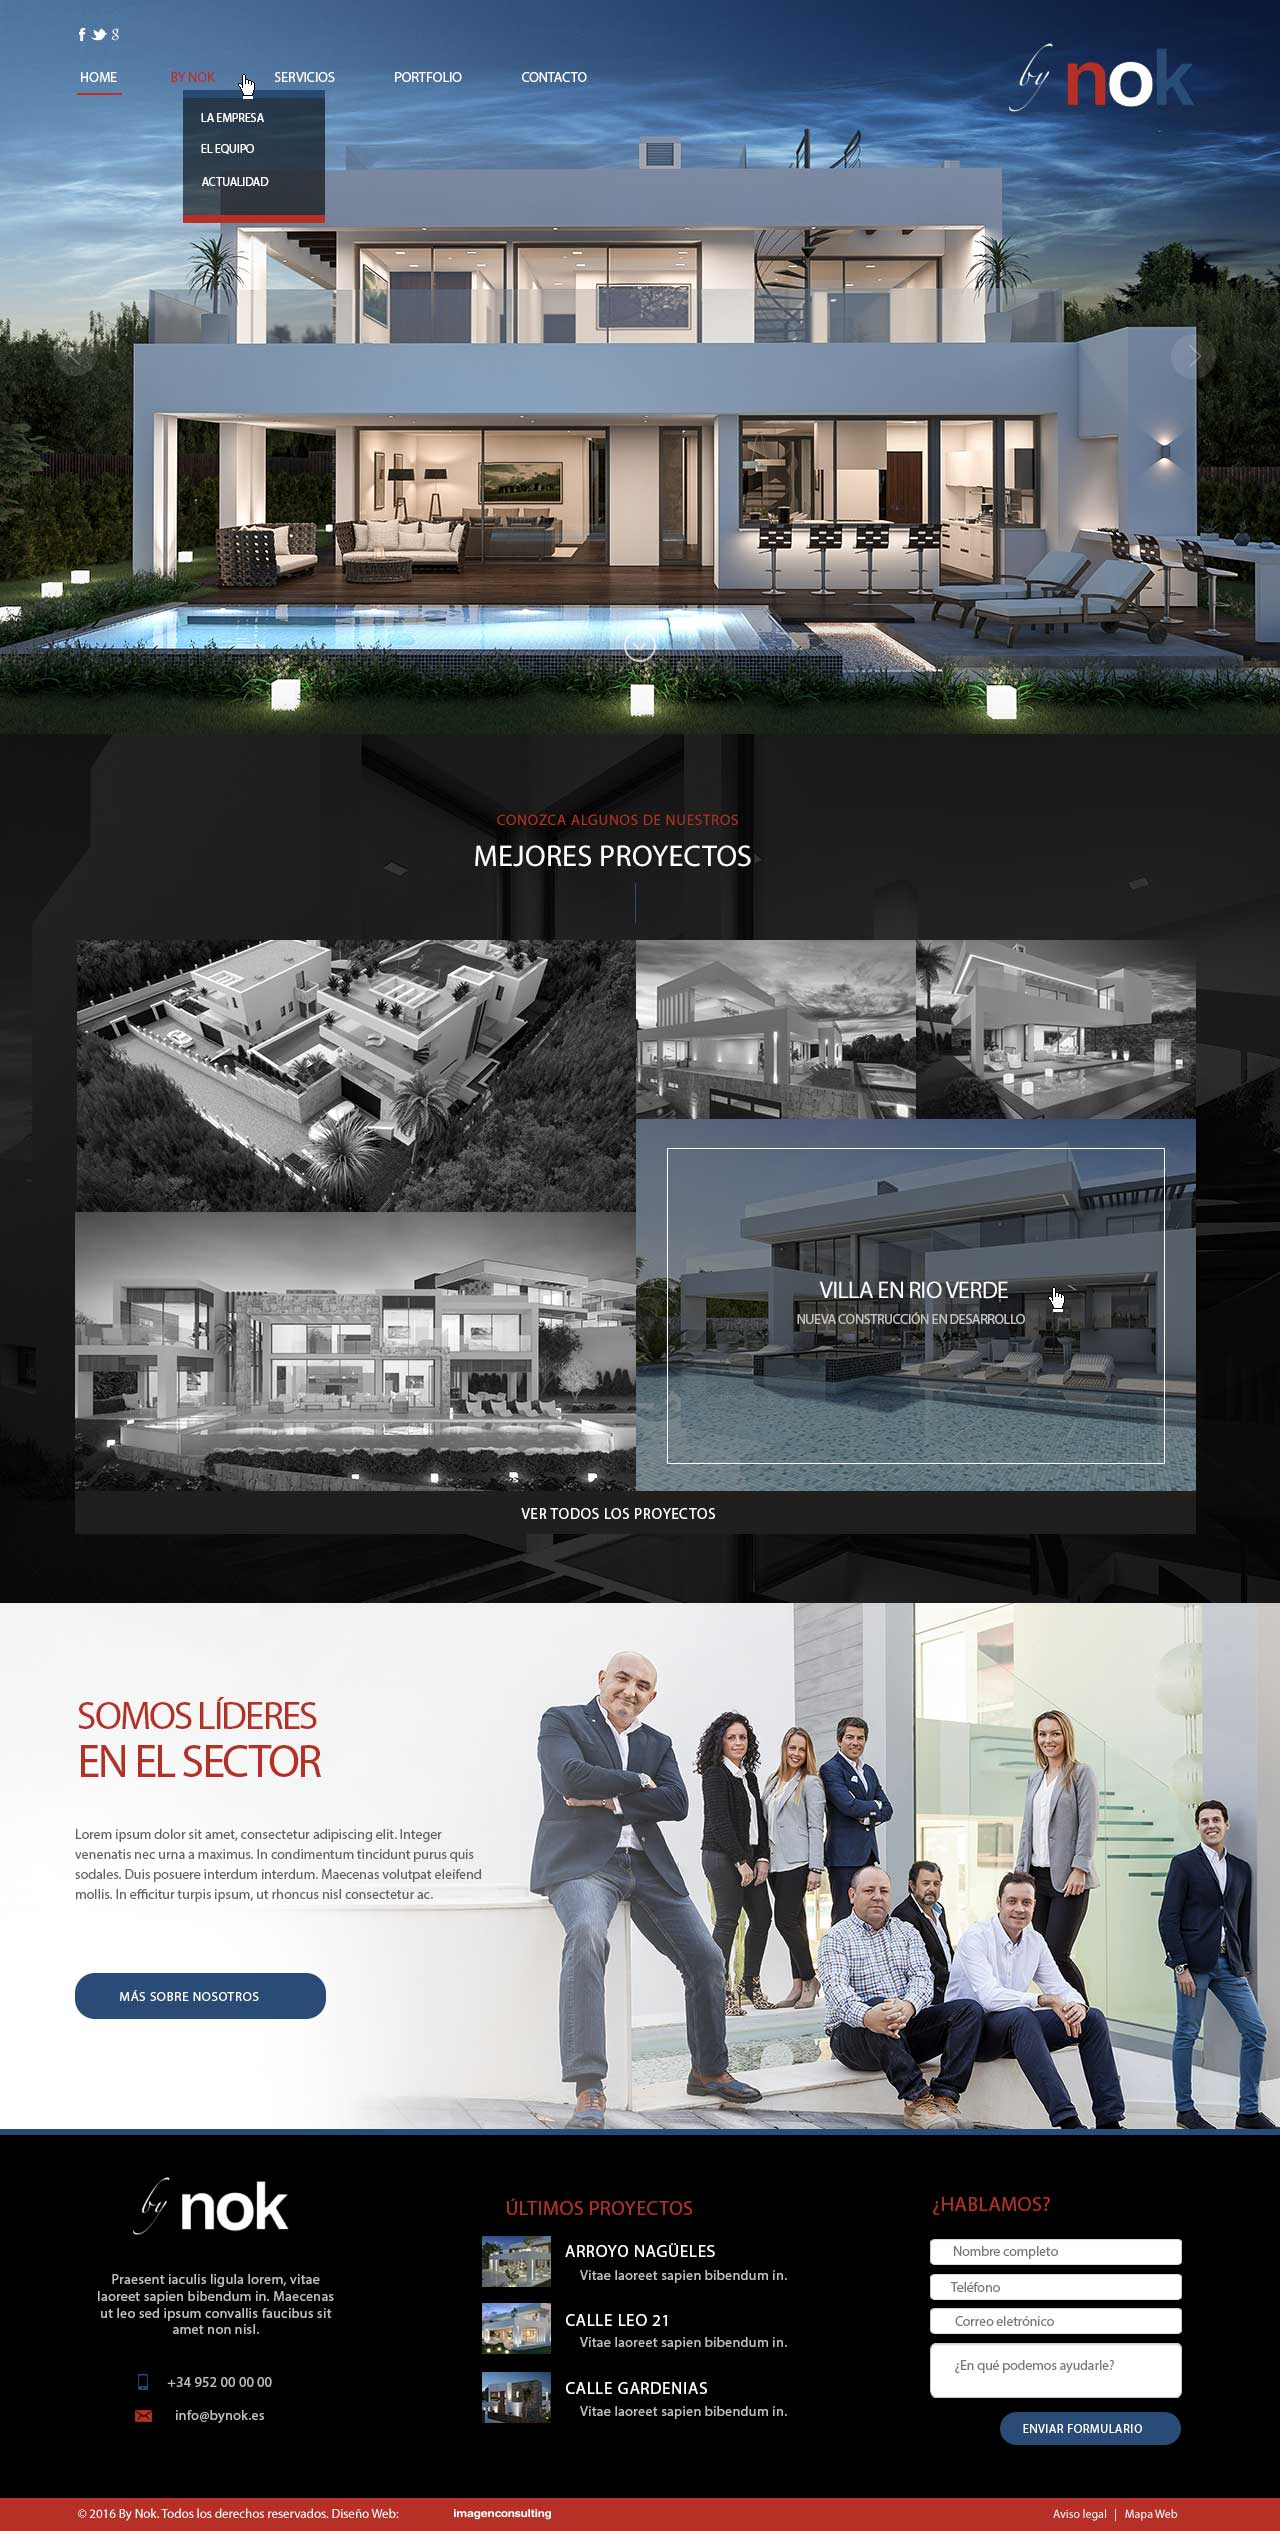 Web design for by Nok architecture